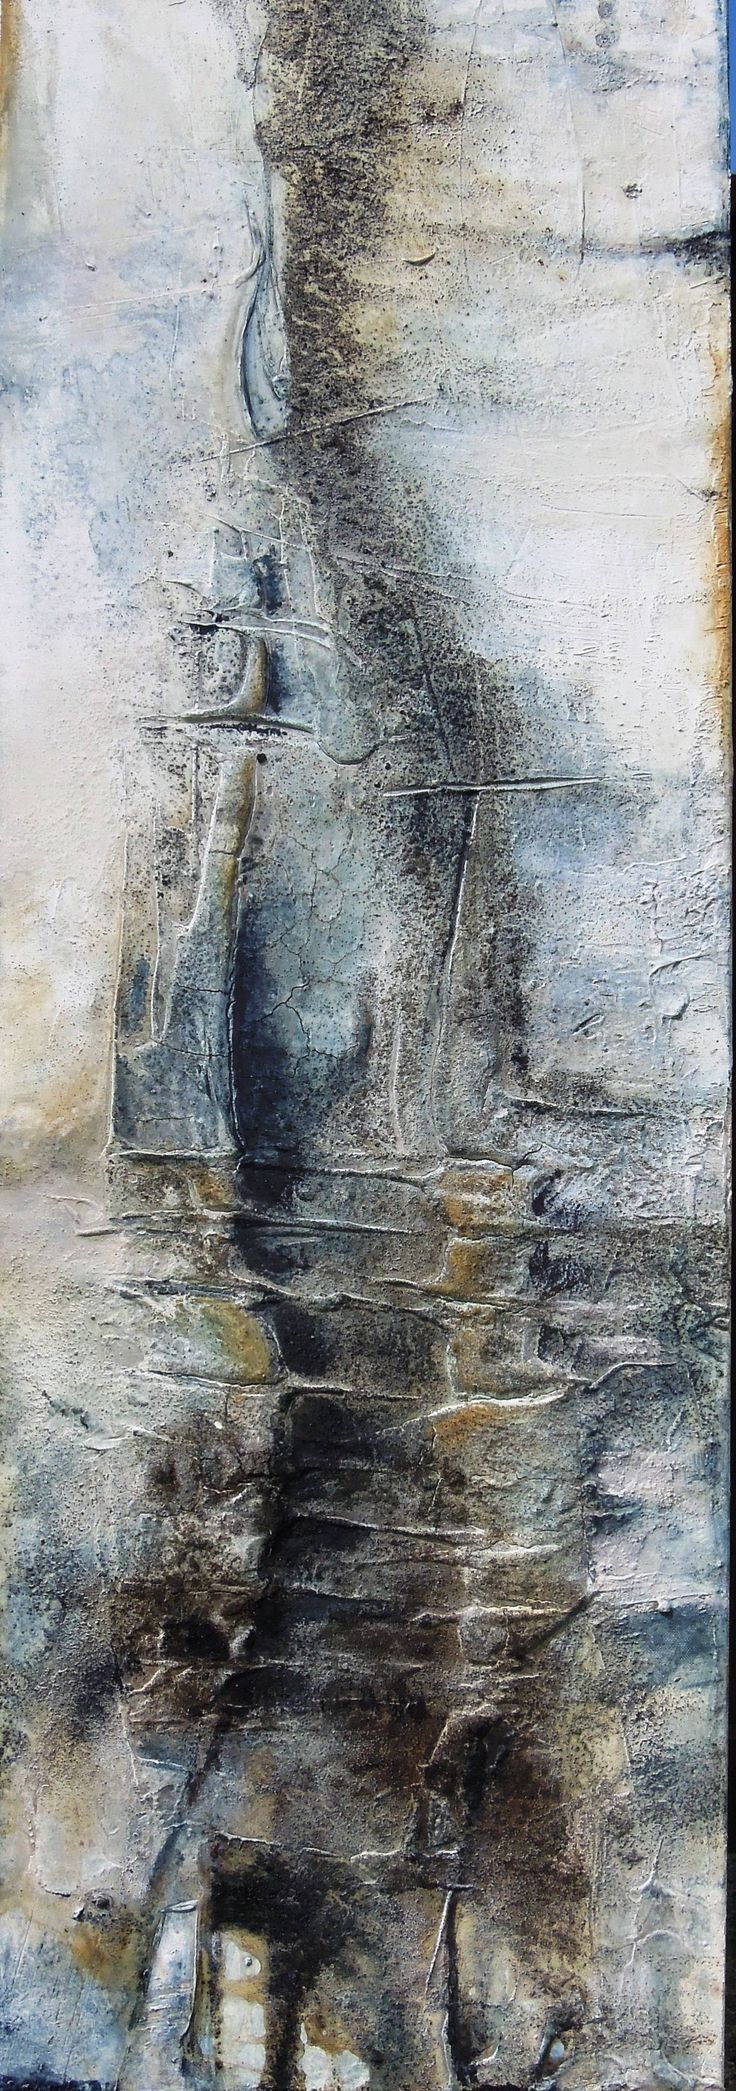 289 best Painting images on Pinterest   Abstract art, Abstract ...